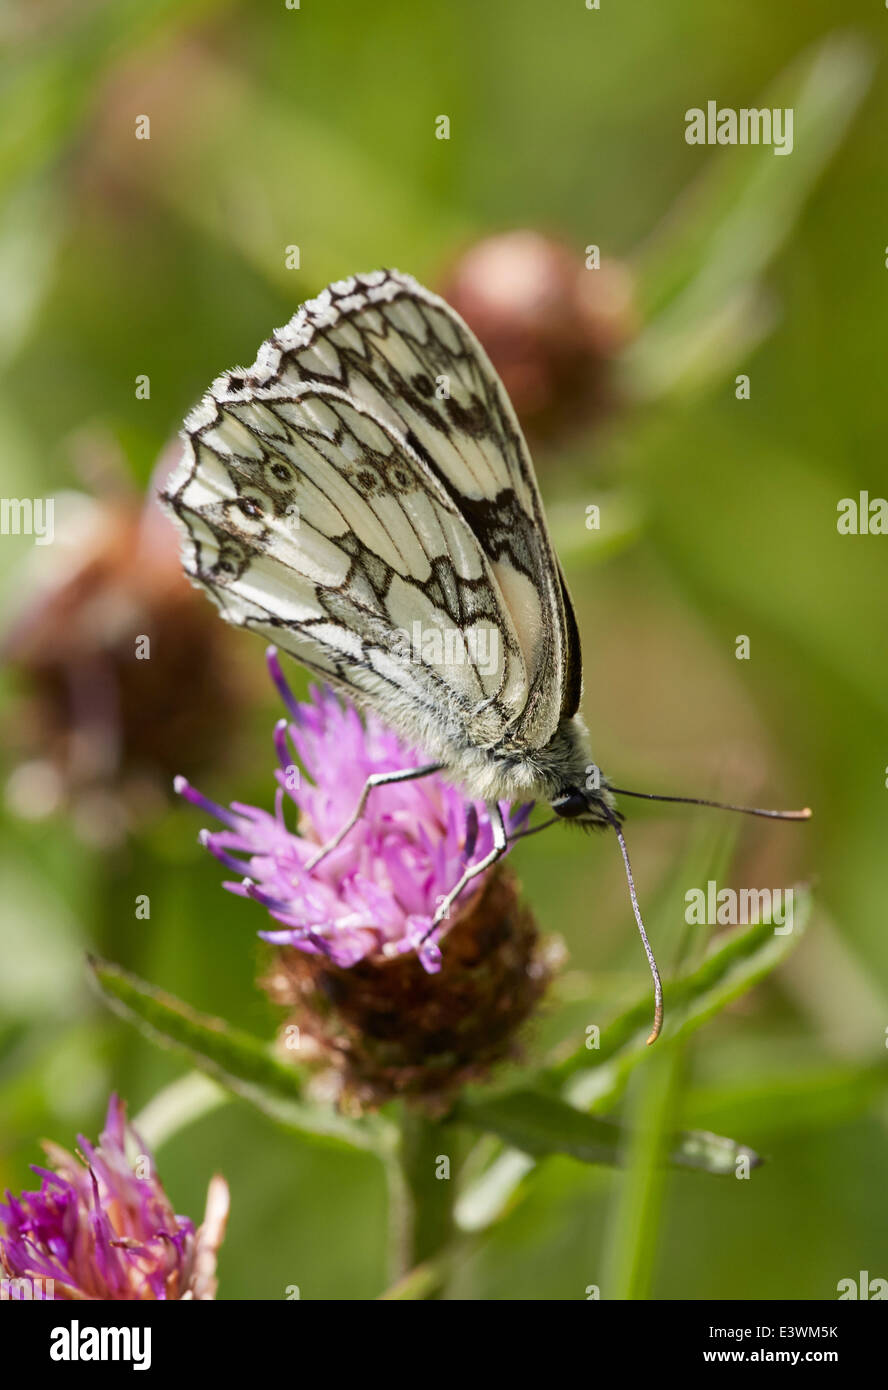 Marbled White butterfly feeding on Knapweed. Norbury Park, Mickleham, Surrey, England. - Stock Image